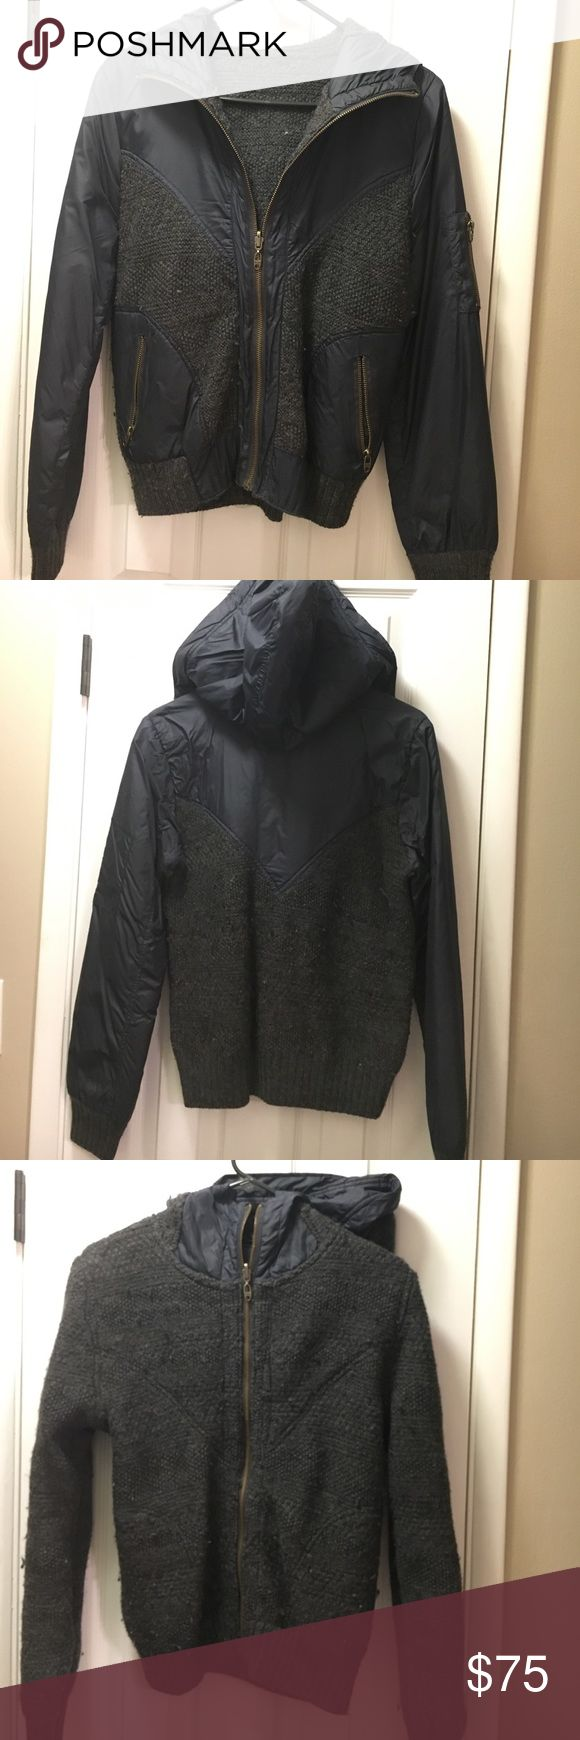 Diesel brand reversible sweater-jacket Really warm, Diesel brand-reversible jacket. Needs a new home. Charcoal gray and navy. Diesel Jackets & Coats